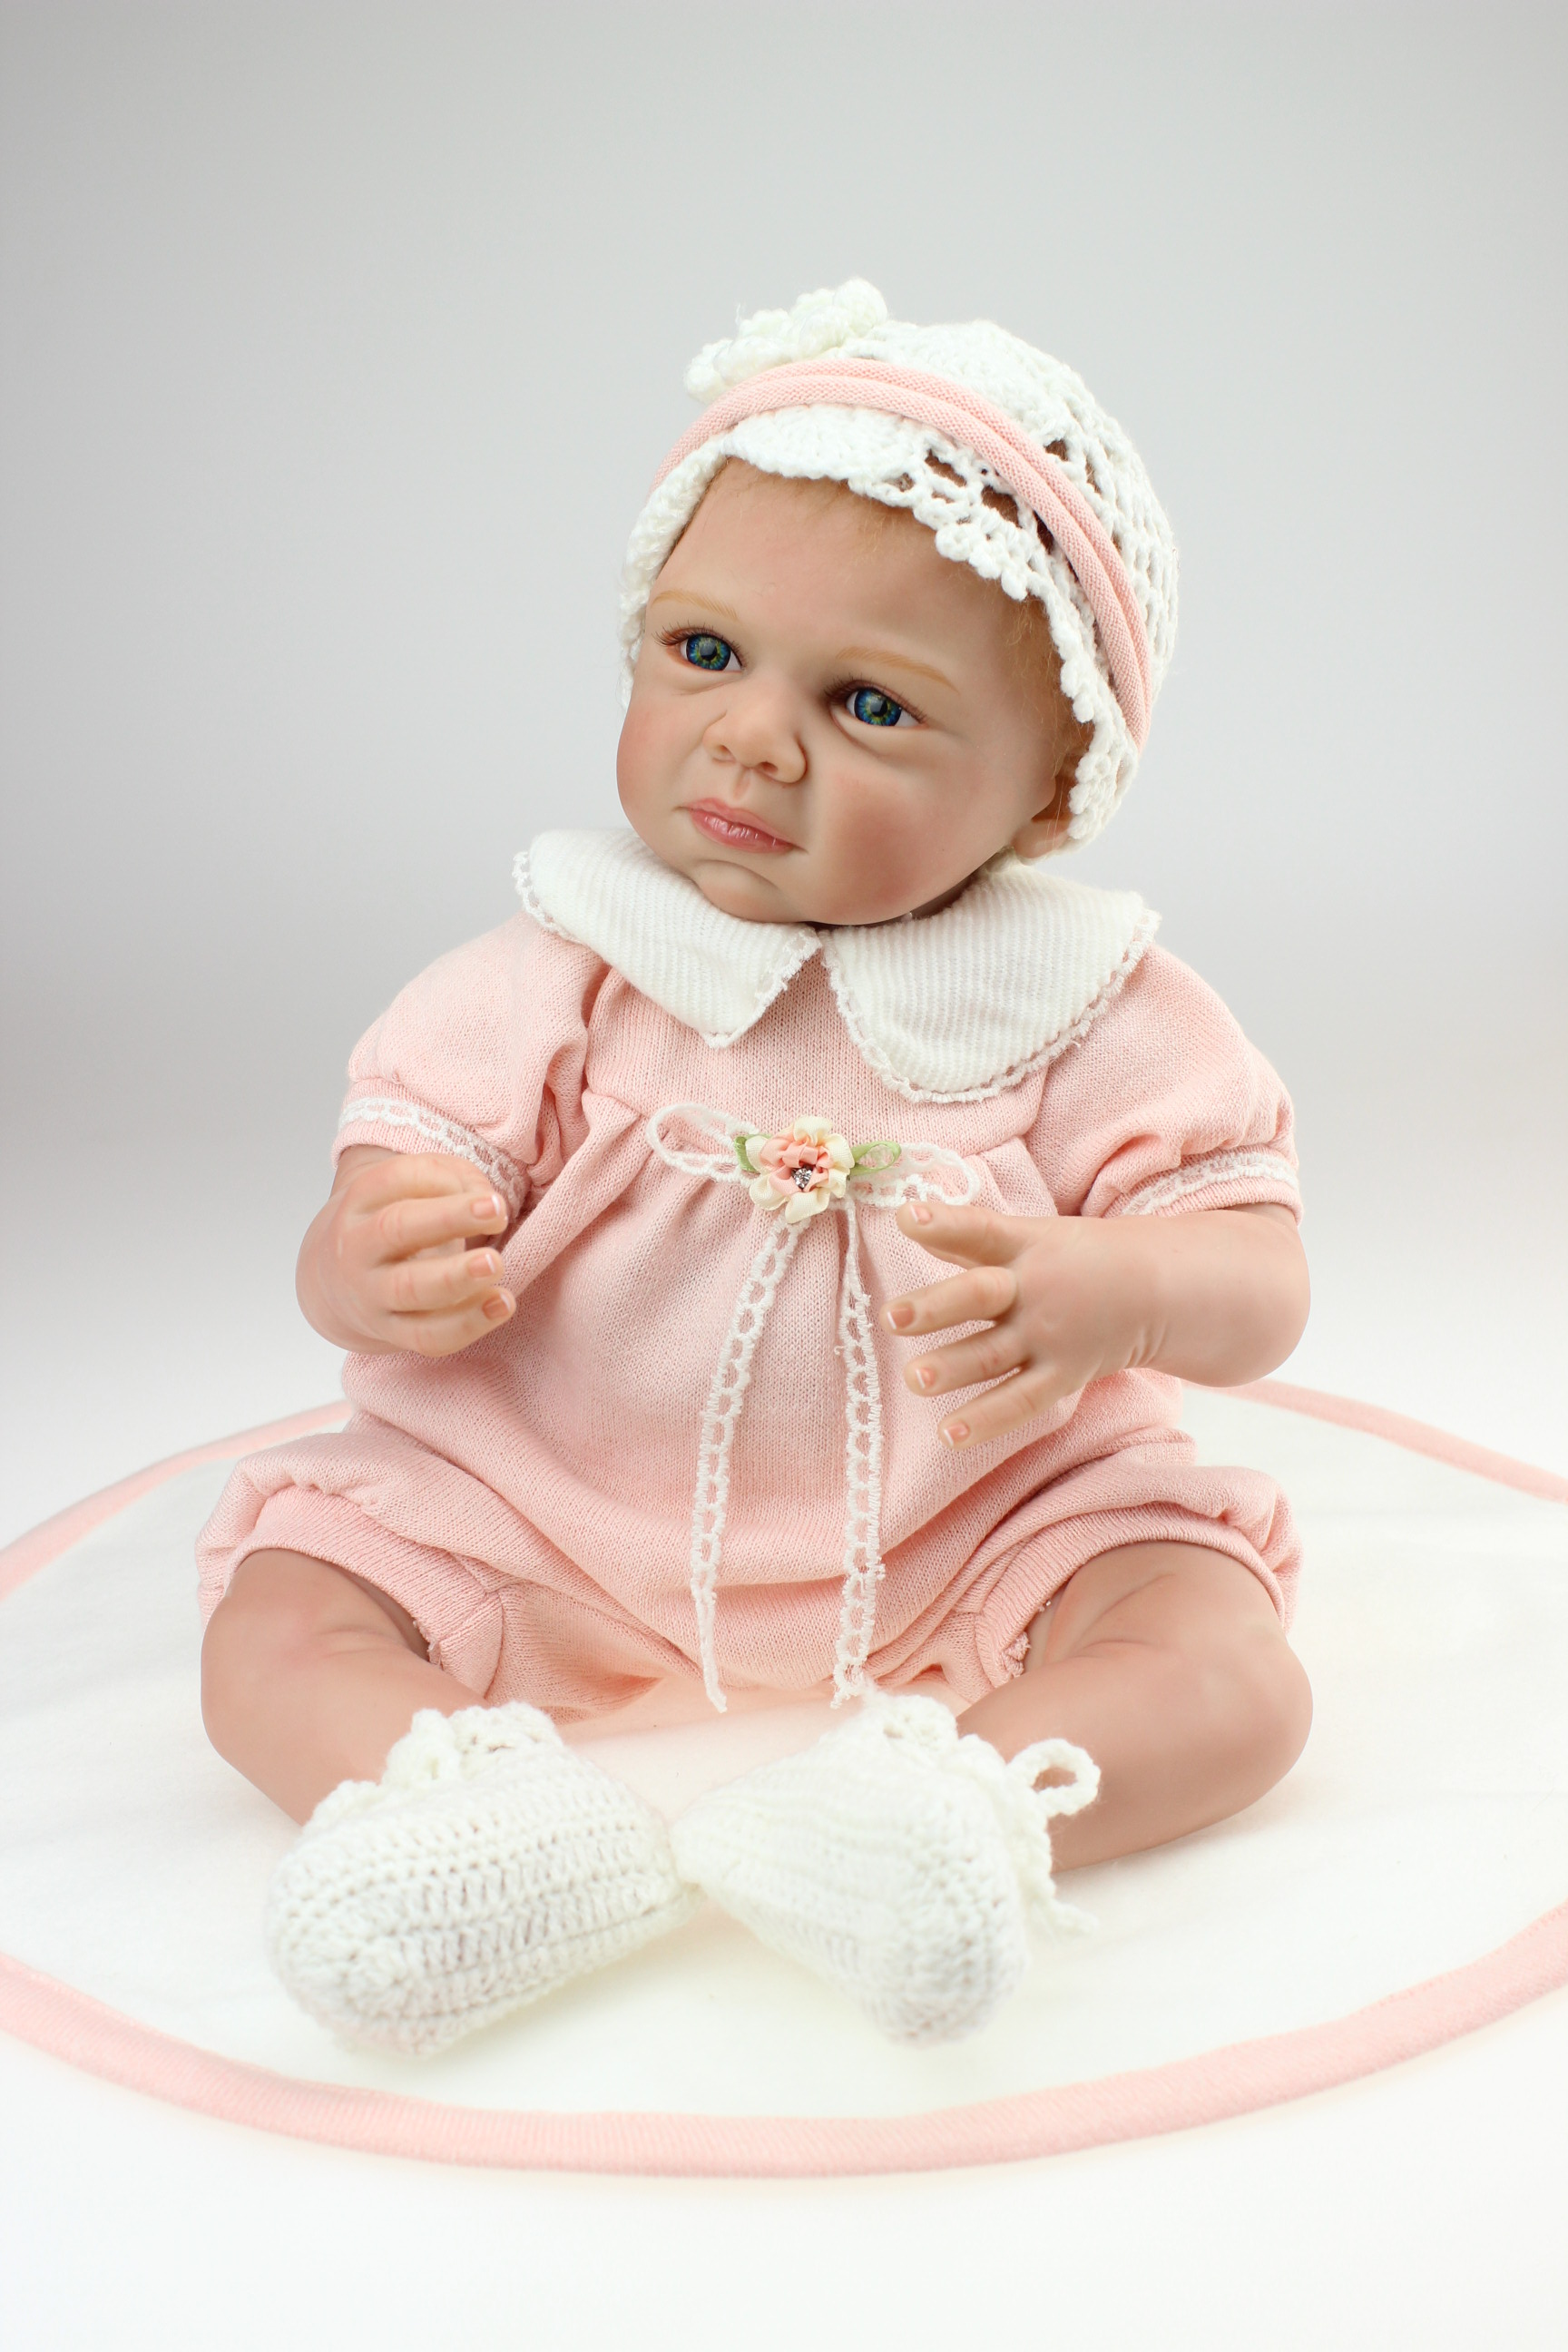 50CM Silicone Baby Reborn Dolls Lifelike Doll Reborn Babies Toys for Girl Pink Princess Gift Brinquedos Mothers Training Doll 18inch 45cm silicone baby reborn dolls lifelike doll reborn babies toys for girl princess gift brinquedos children s toys